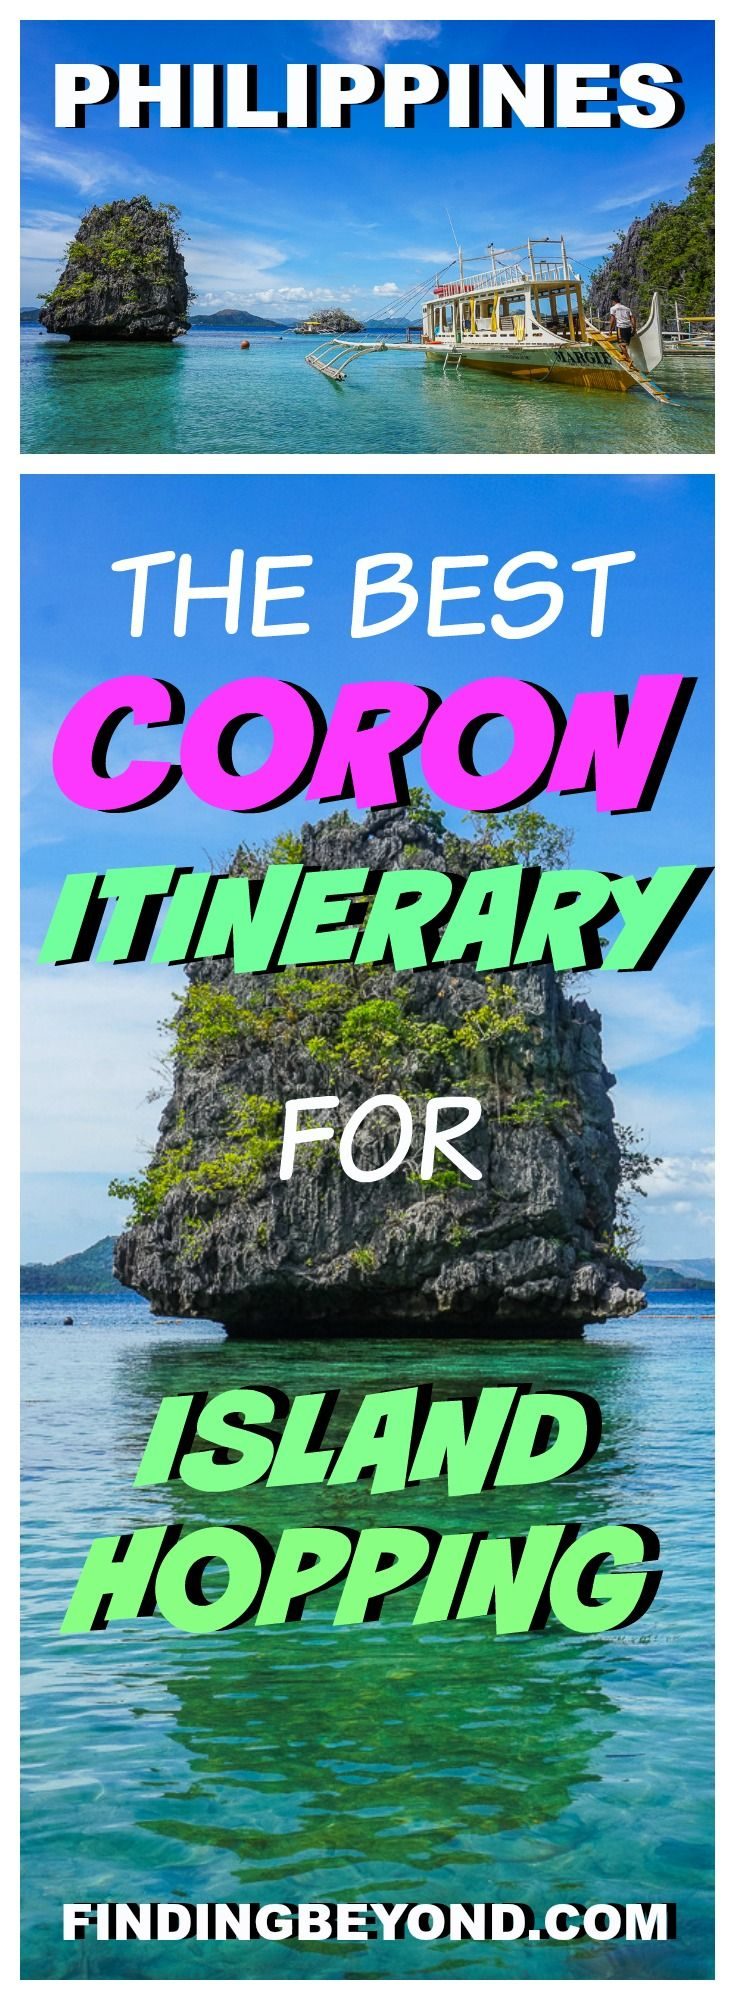 Check out our tried and tested best Coron itinerary which includes Coron Island hopping, awesome accommodation in Coron town and how to get there. | It's more fun in the Philippines | Visit Coron | Best beaches in the Philippines | Best boat tours in Coron | Top activities In Coron | Backpacking In the Philippines | Philippines on a Budget | Top Places To stay in the Philippines | Coral Garden | Baracuda Lake